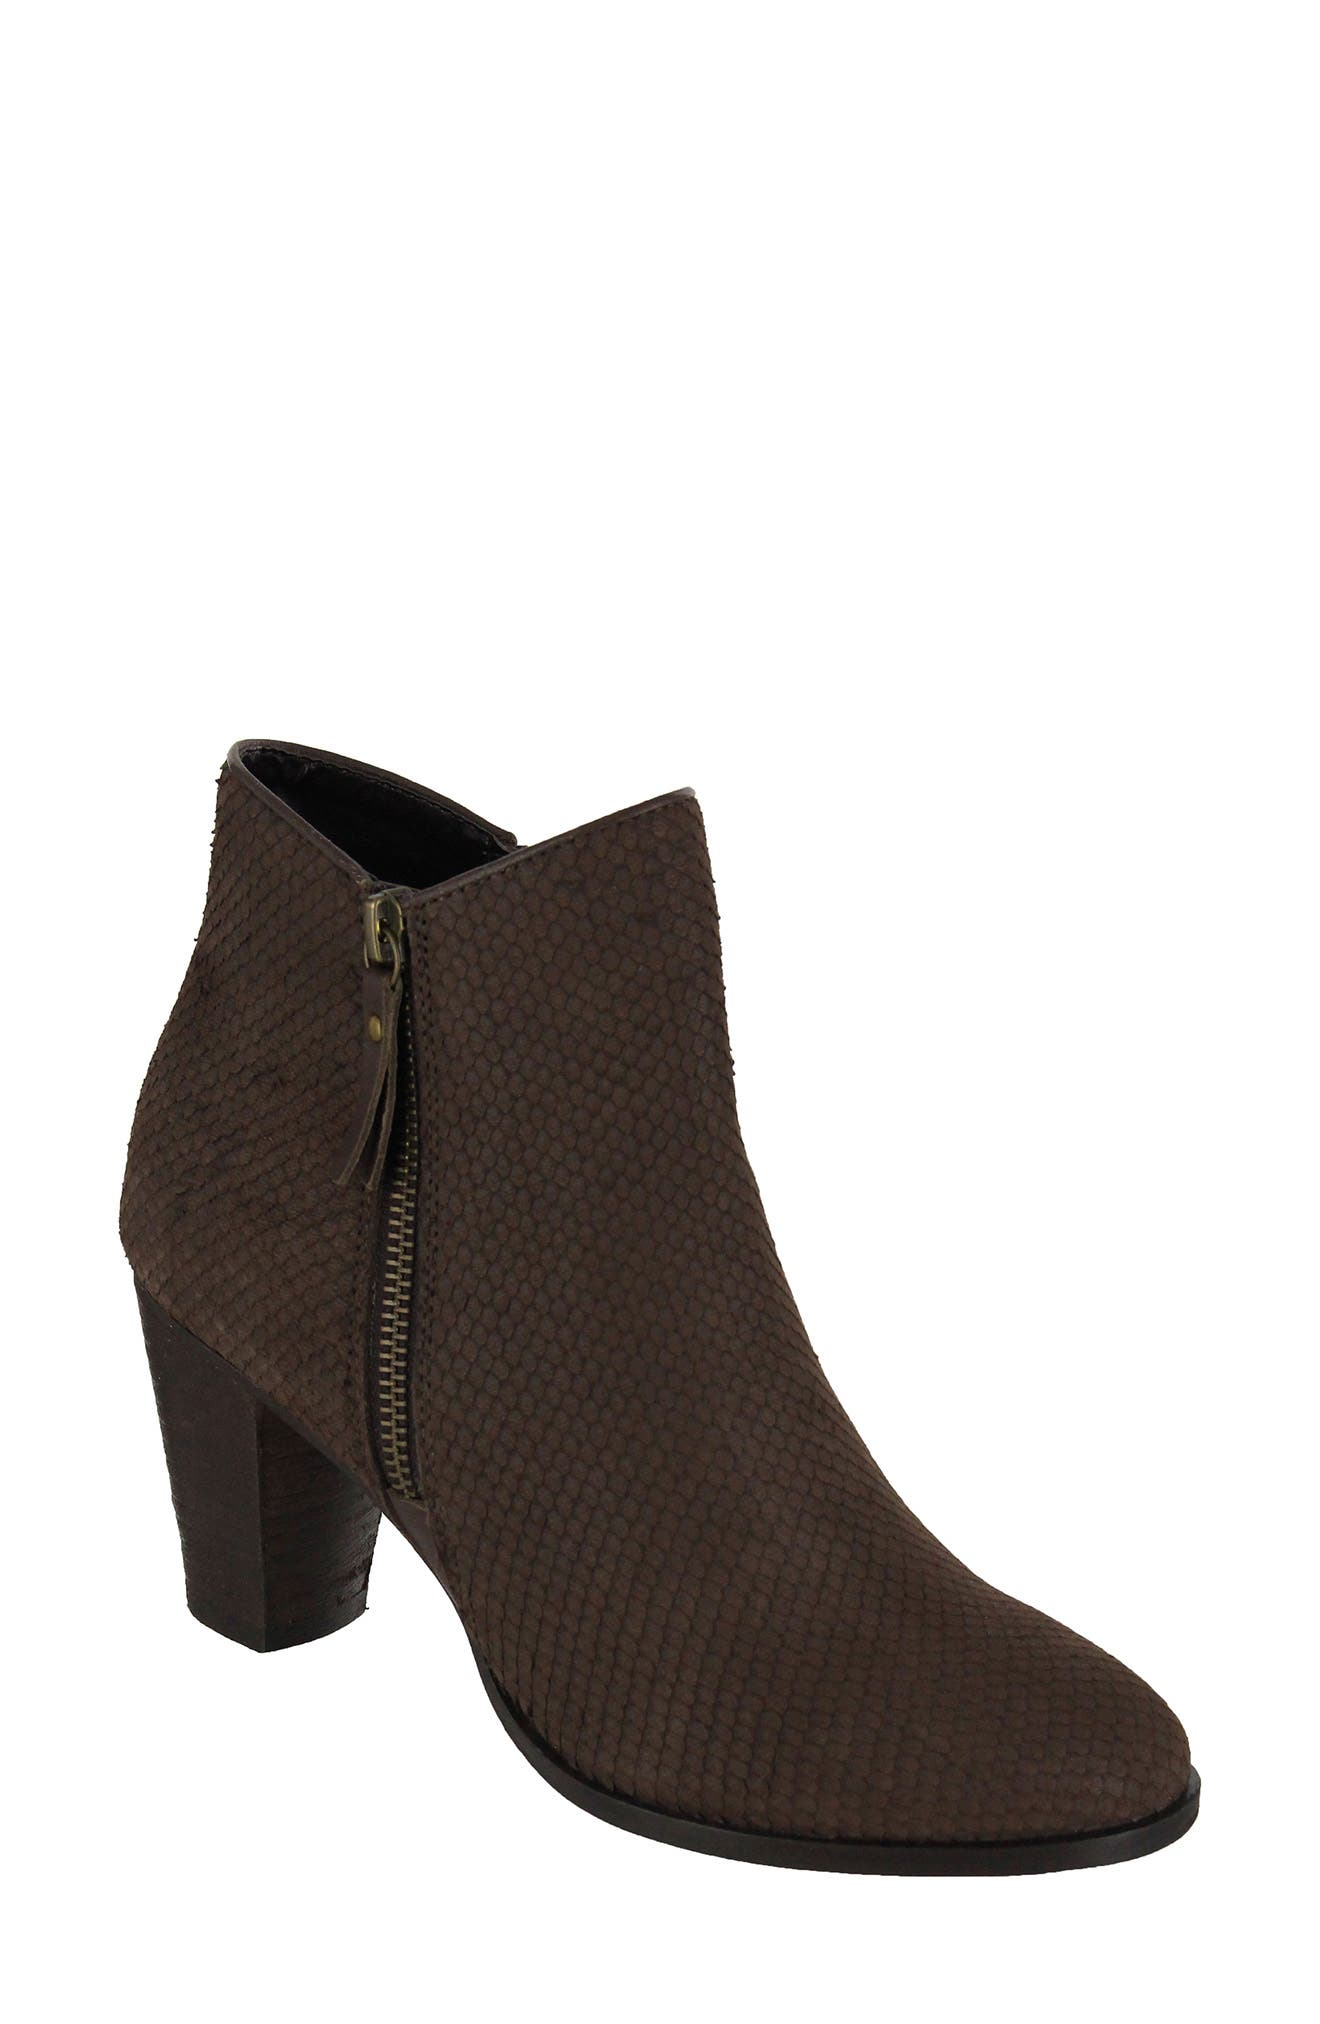 Alternate Image 1 Selected - MIA Maddock Block Heel Bootie (Women)